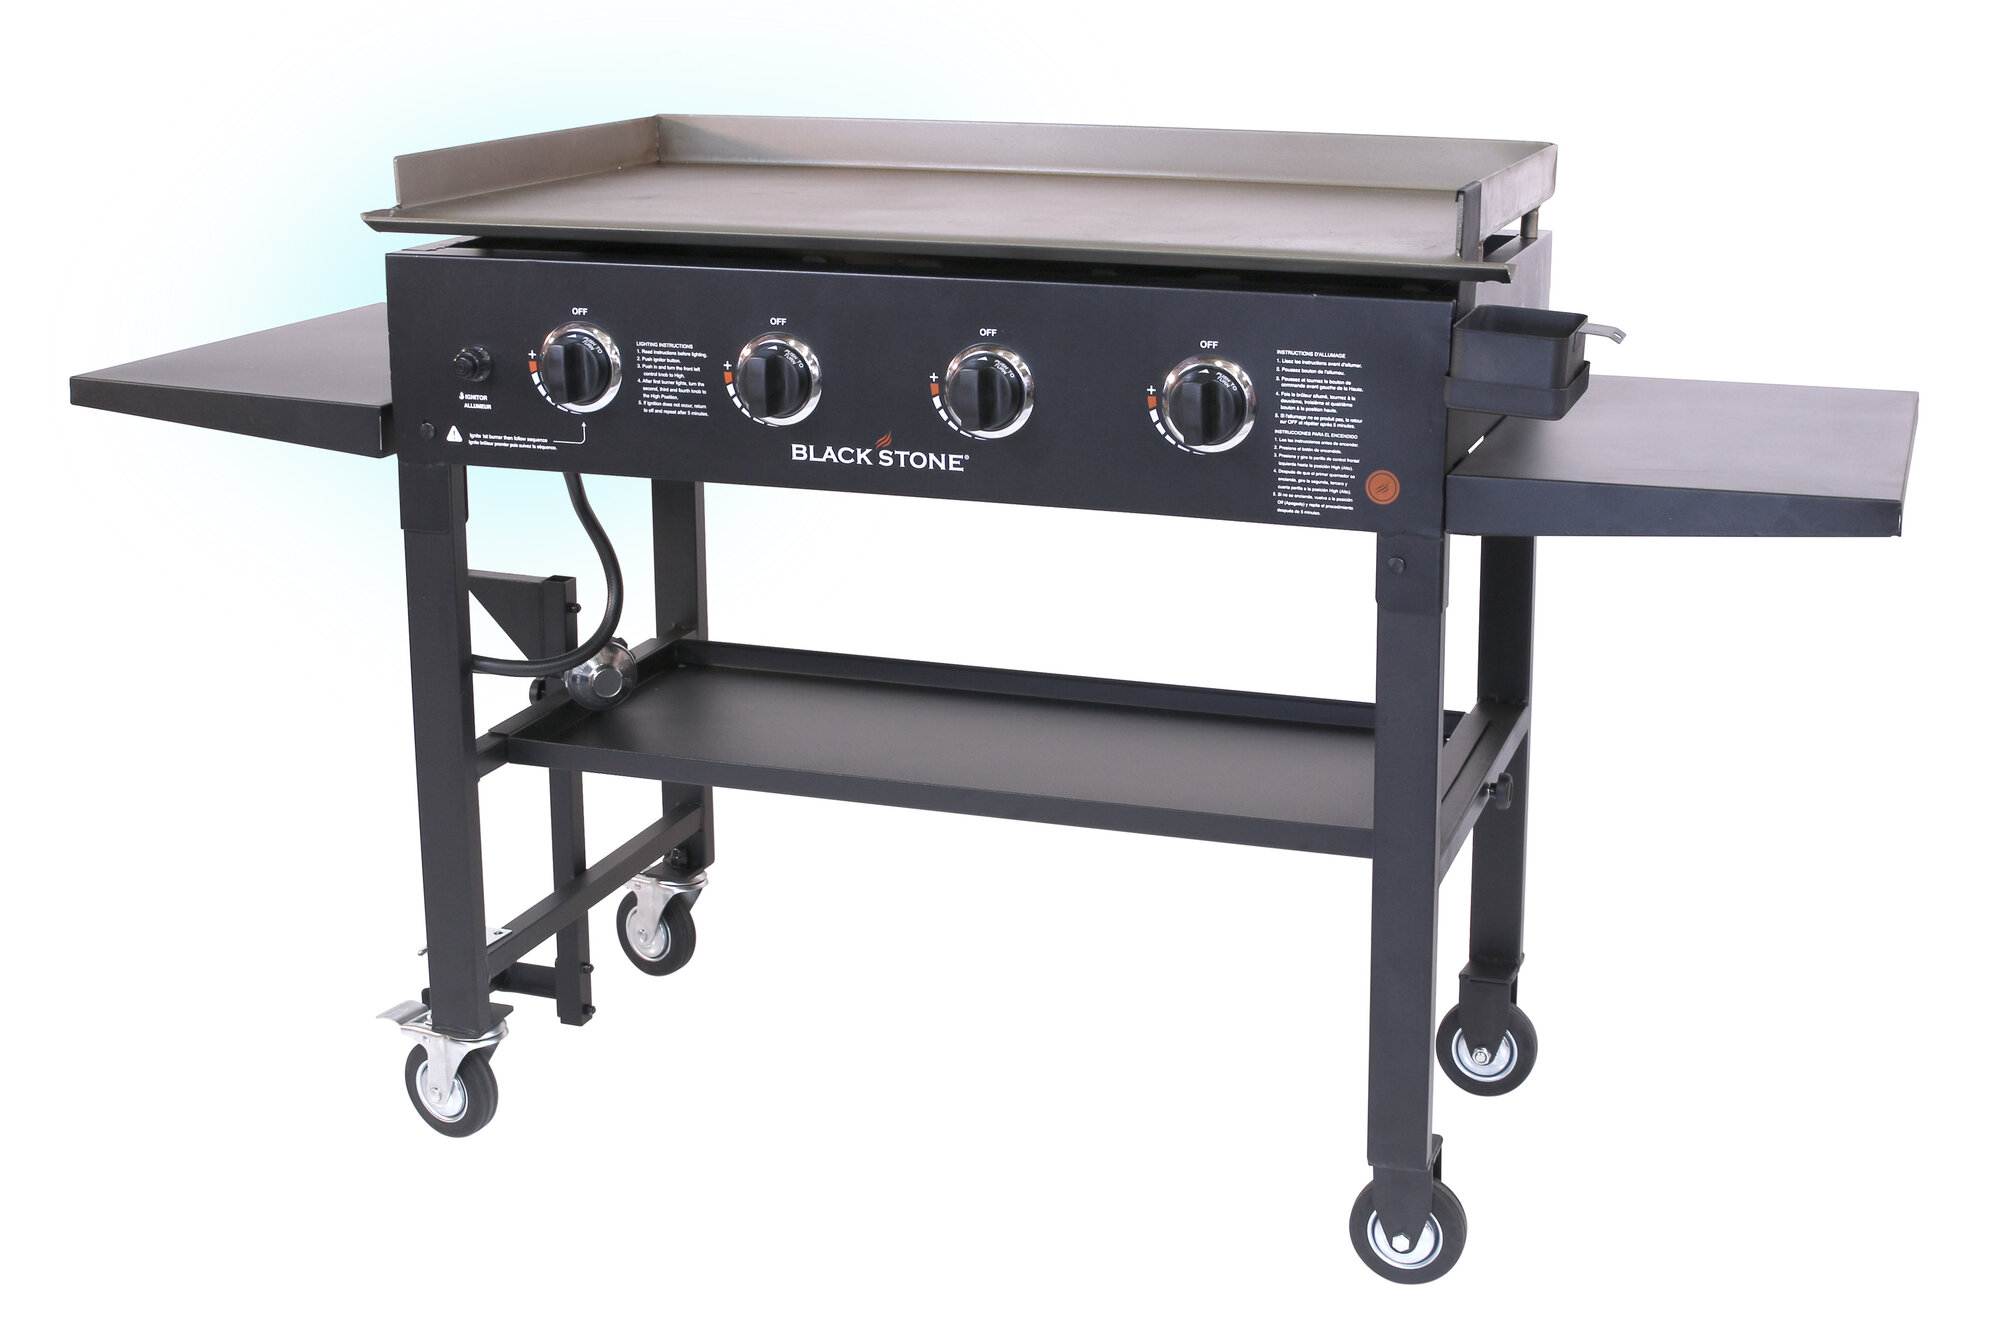 blackstone 36 griddle gas grill cooking station ebay